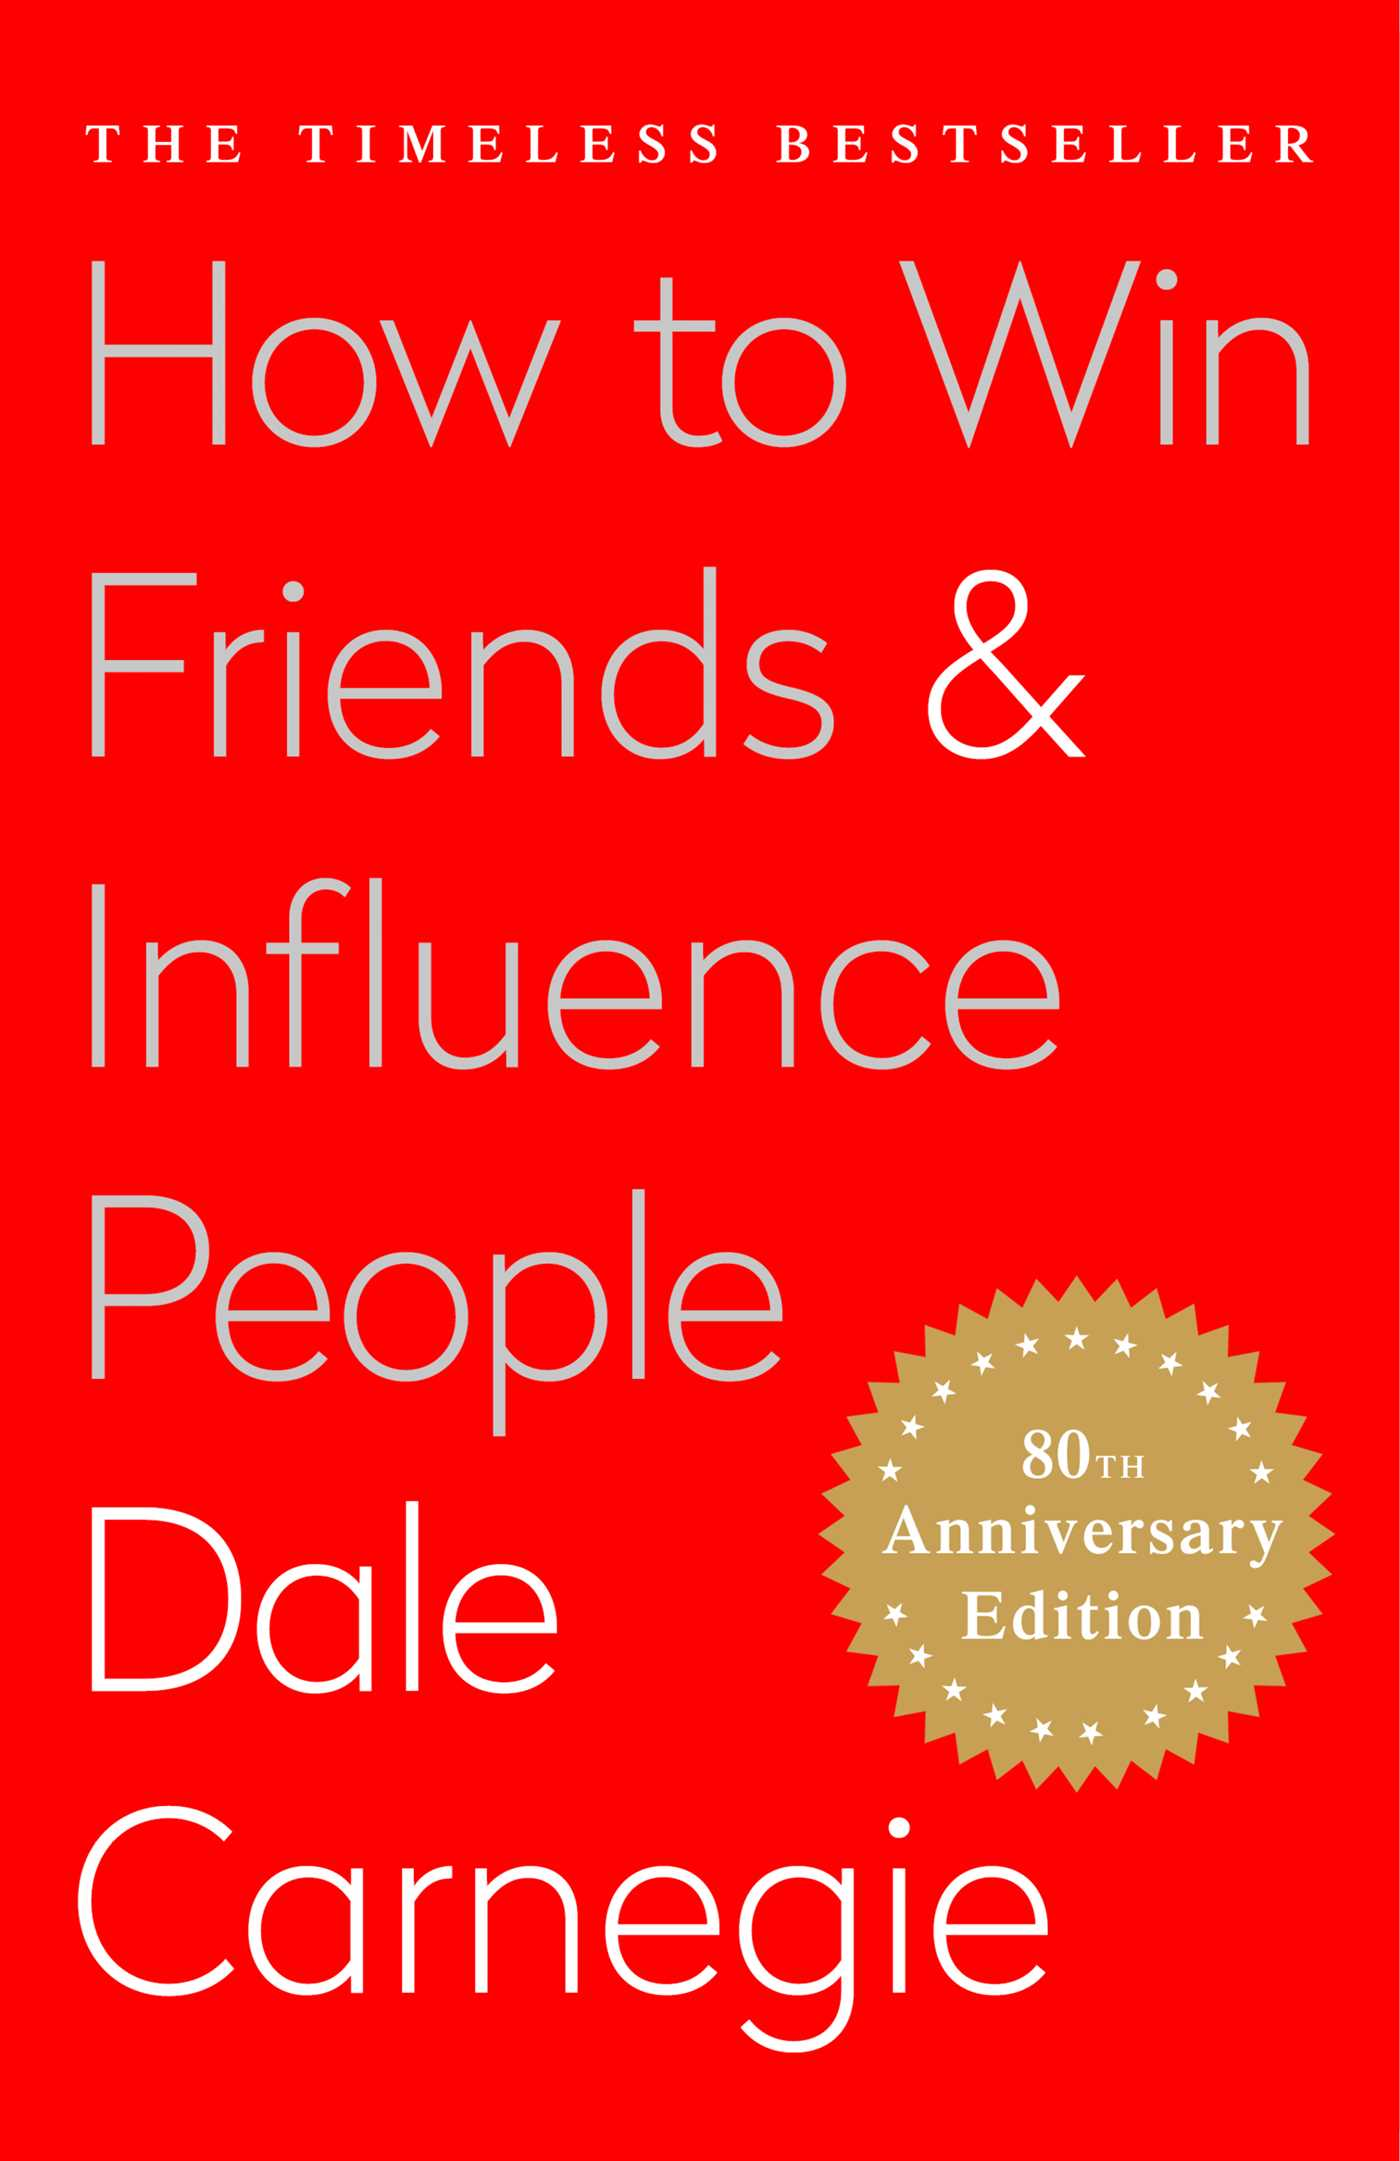 The cover of the book How To Win Friends and Influence People